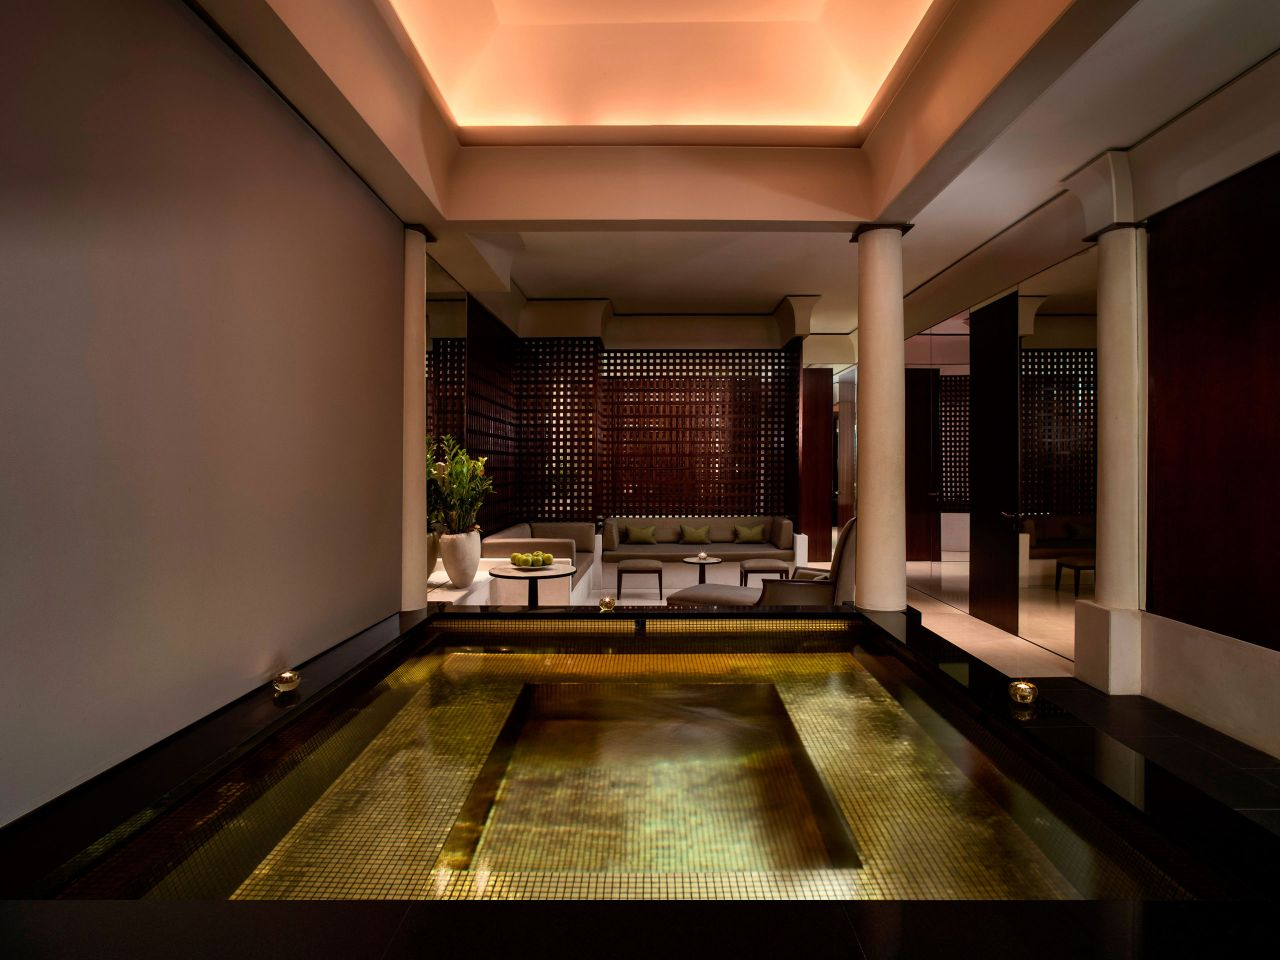 Mosaic jacuzzi and spa sitting area